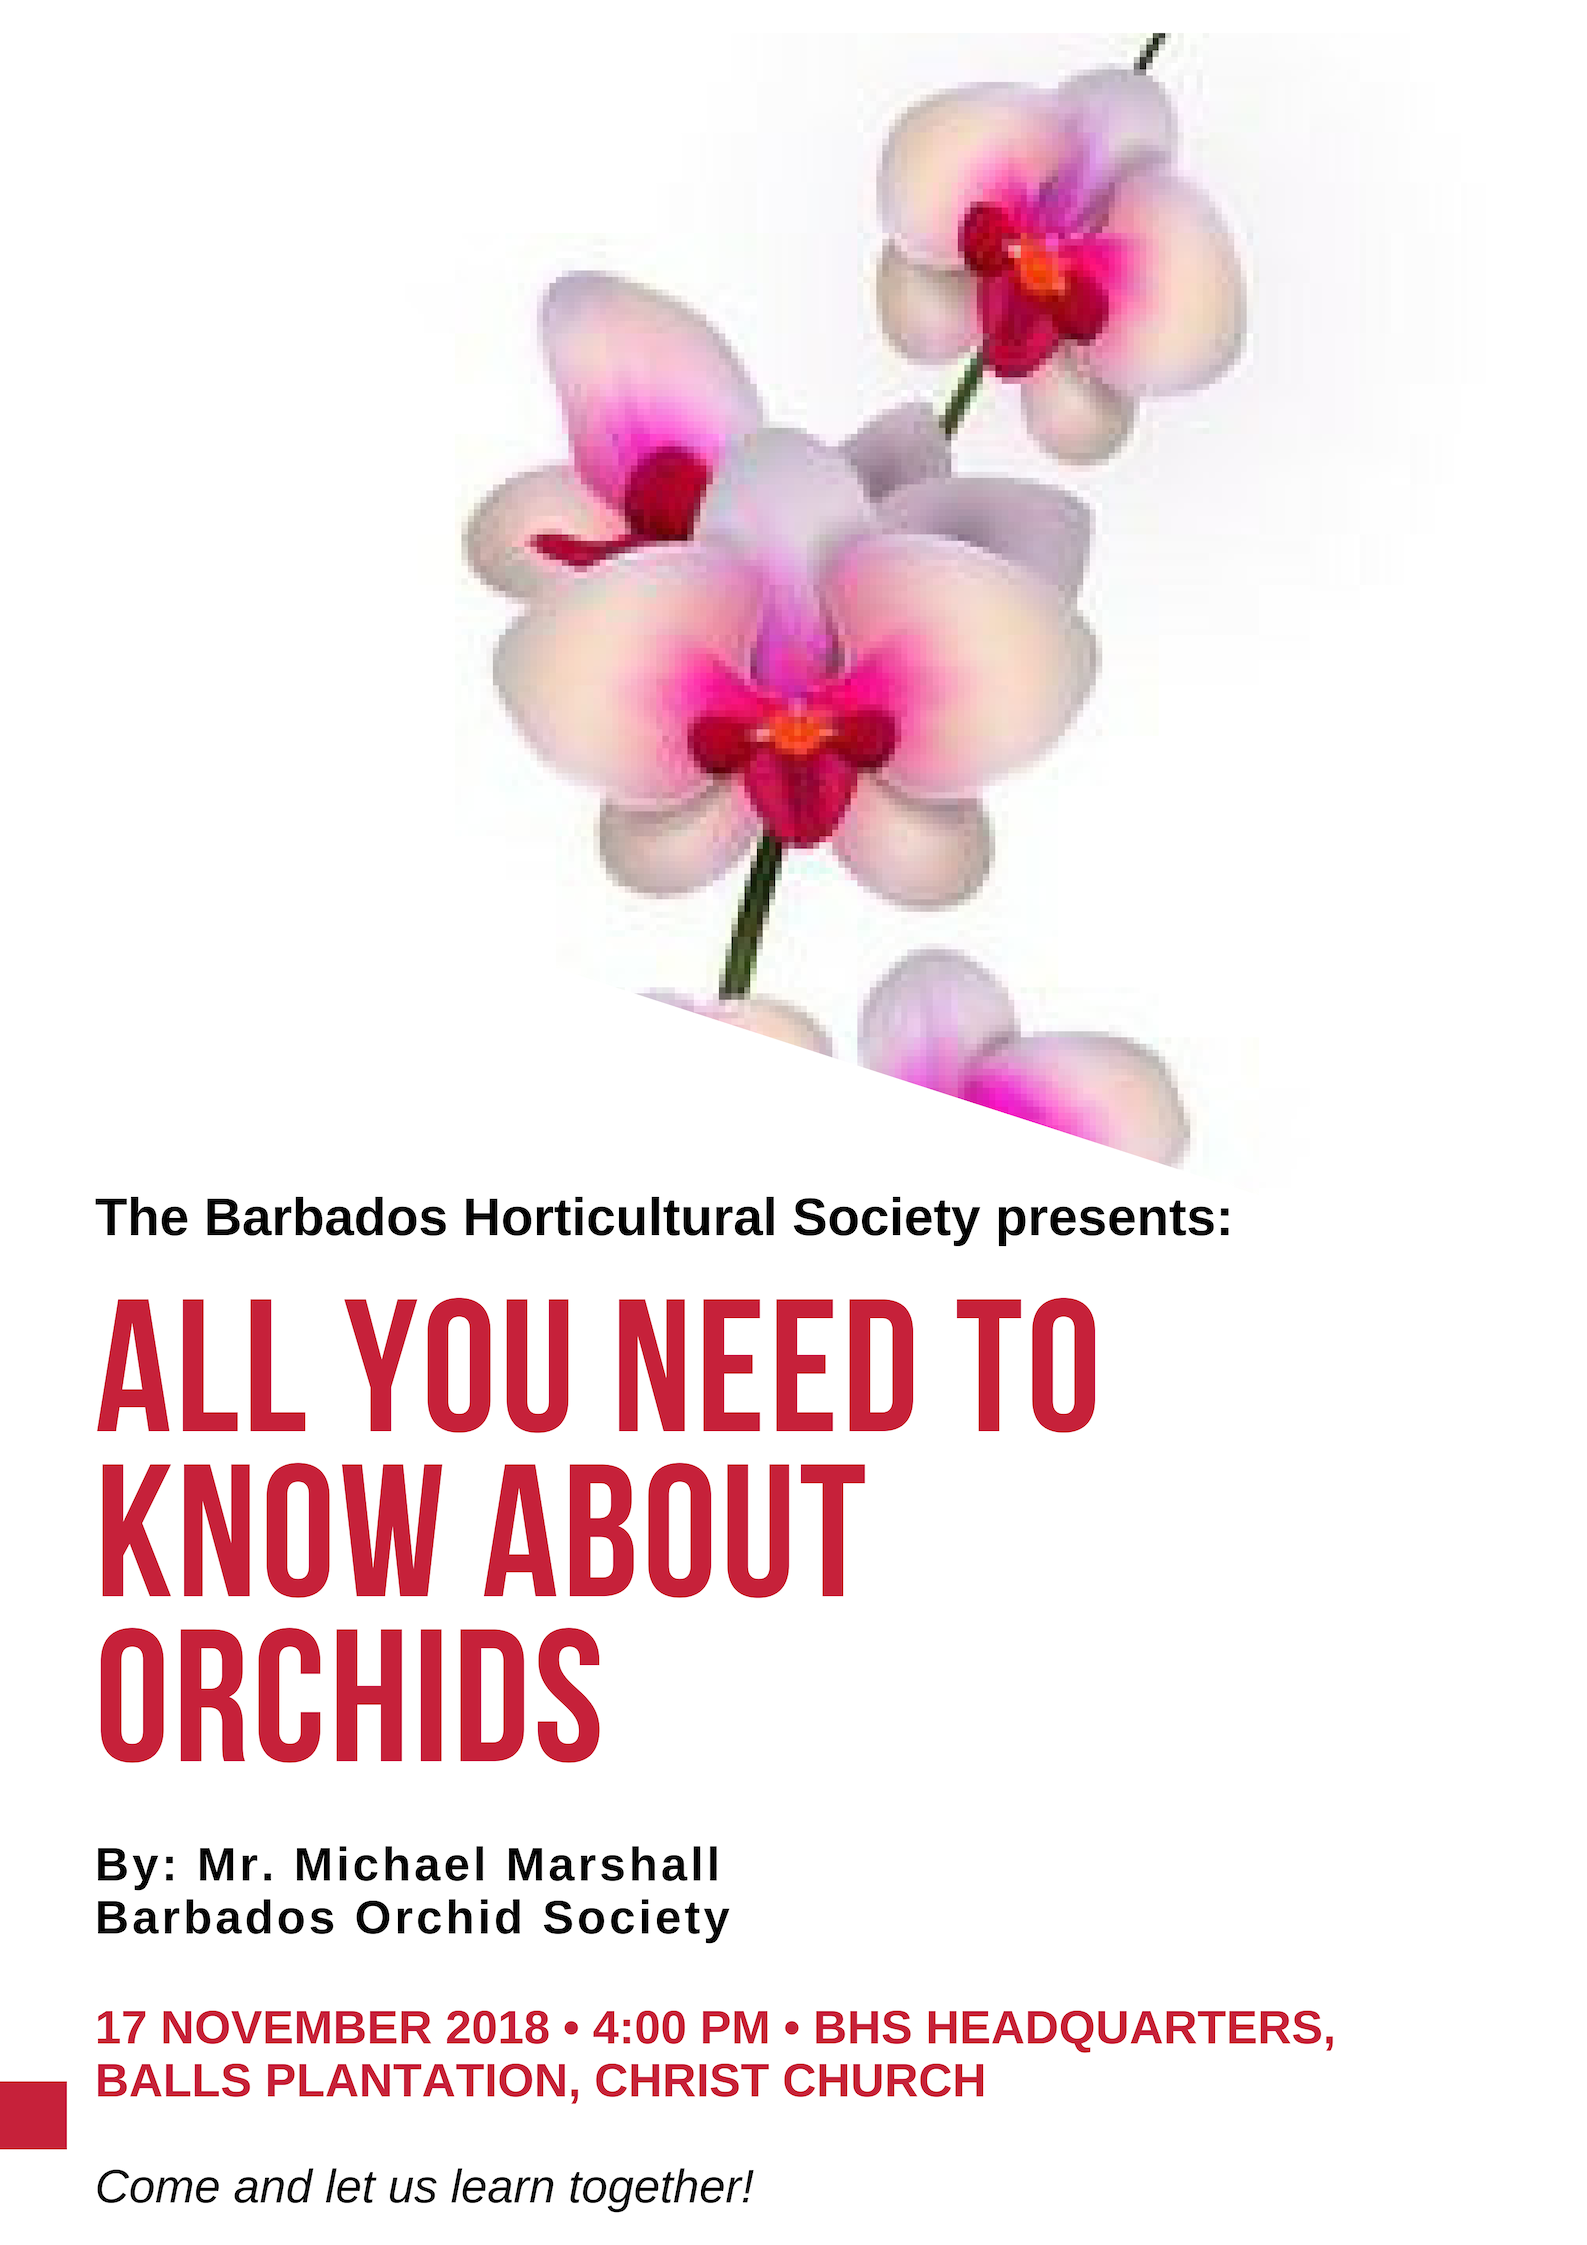 The Barbados Horticultural Society presents_